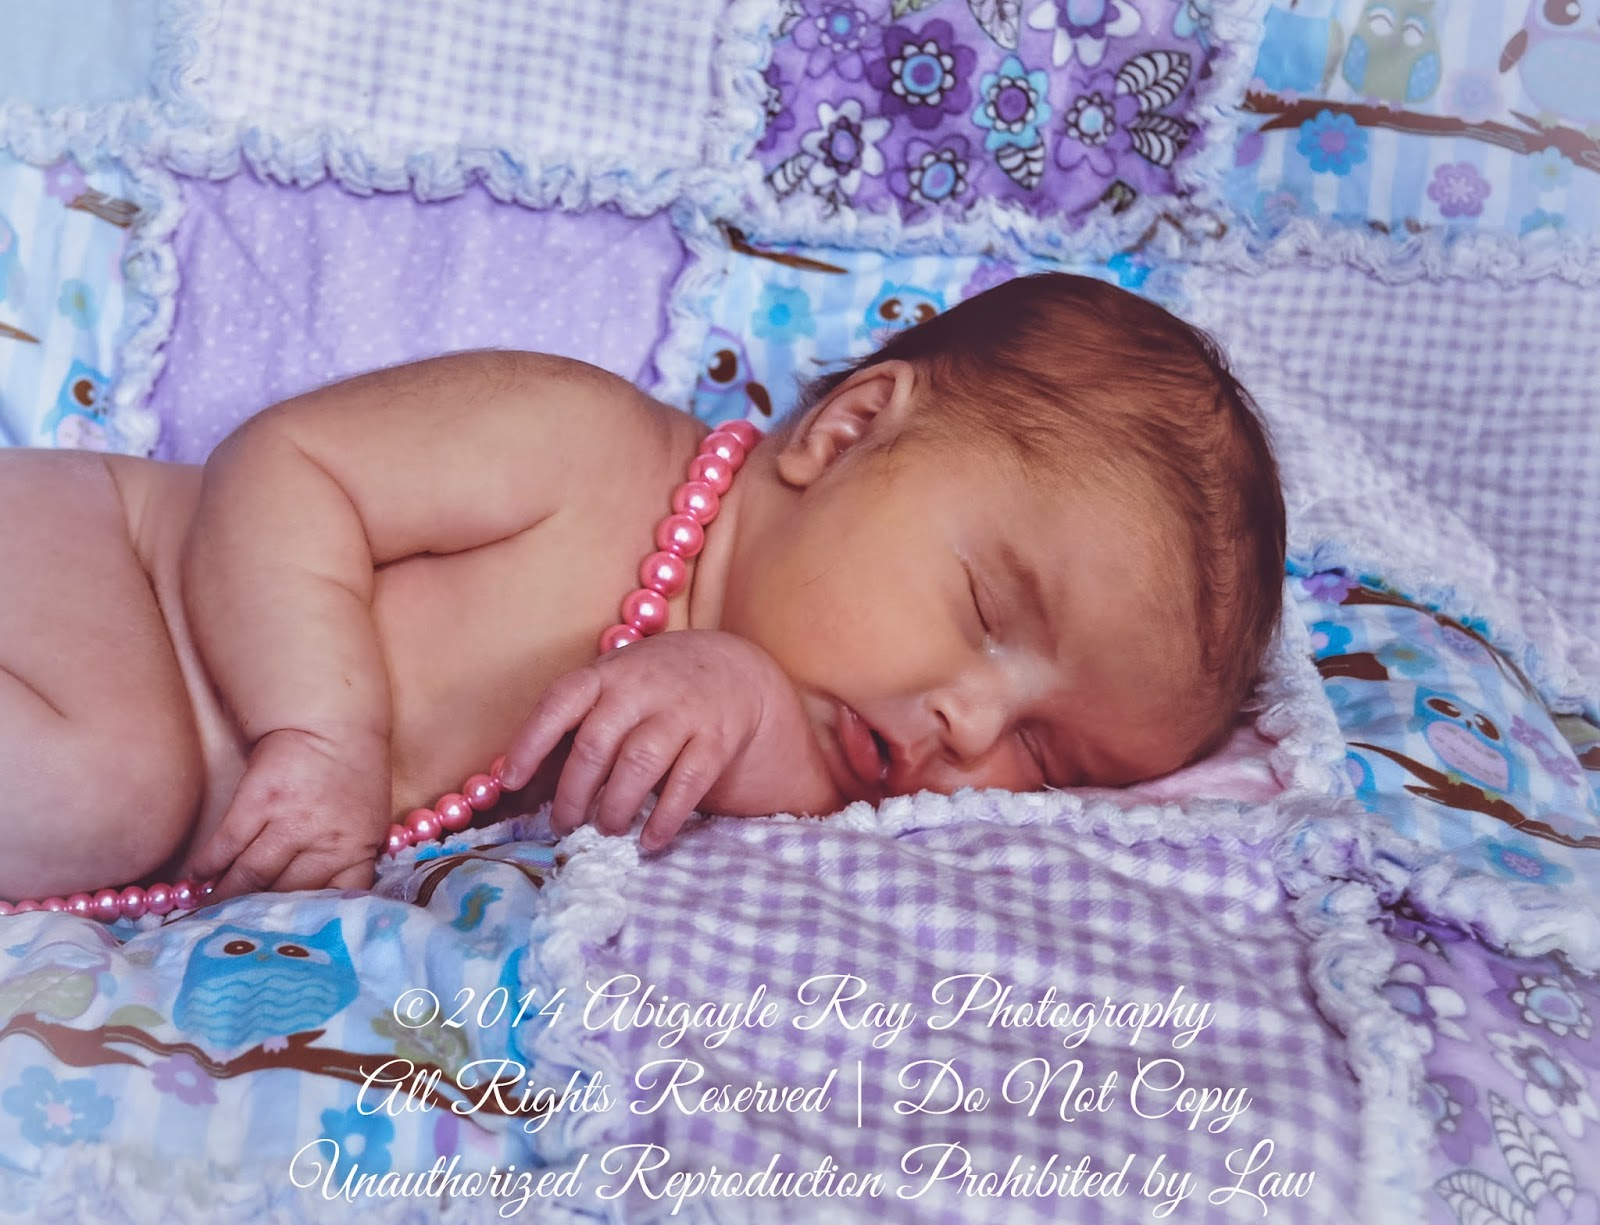 Abigayle Ray Photography, Newborn Photography Elmira, Newborn Photography Horseheads, Newborn Photography Corning, Newborn Photography Watkins Glen, Newborn Photography Waverly, Newborn Photography Sayre, Newborn Photography Athens, Newborn Photography Towanda, Newborn Photography Troy, Newborn Photography Canton, Newborn Photography Mansfield